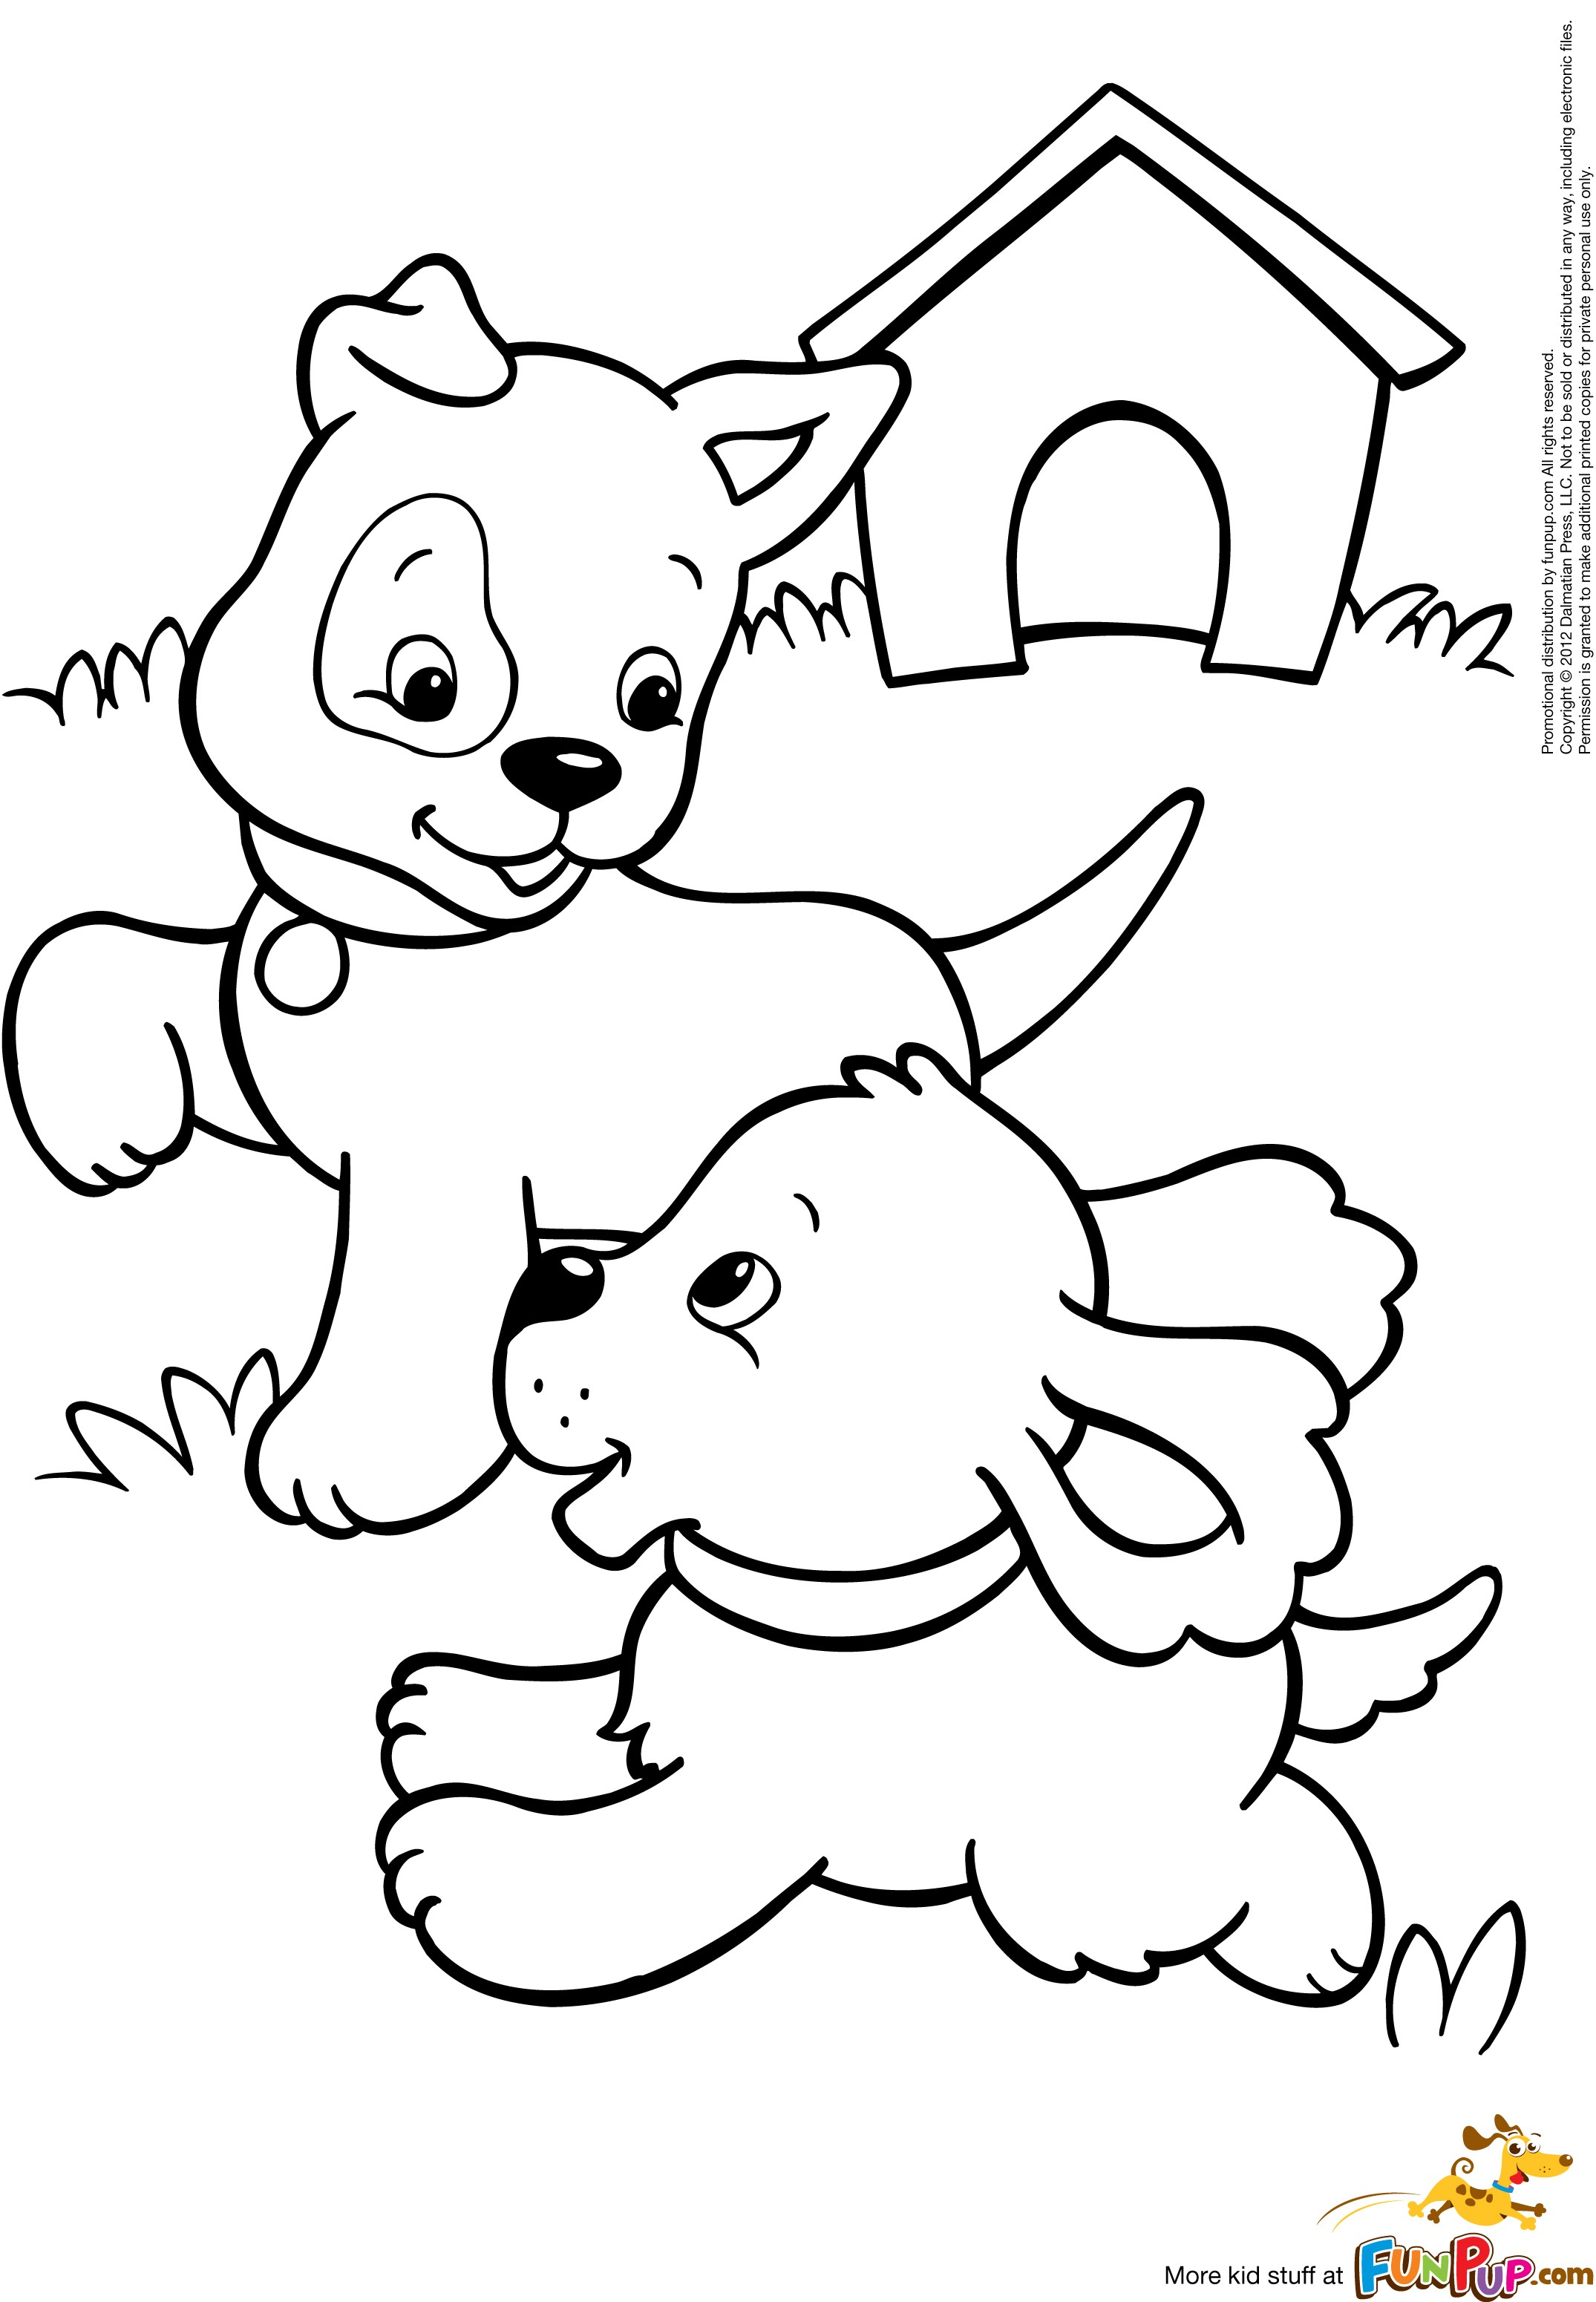 Realistic Puppy Coloring Pages Download And Print For Free